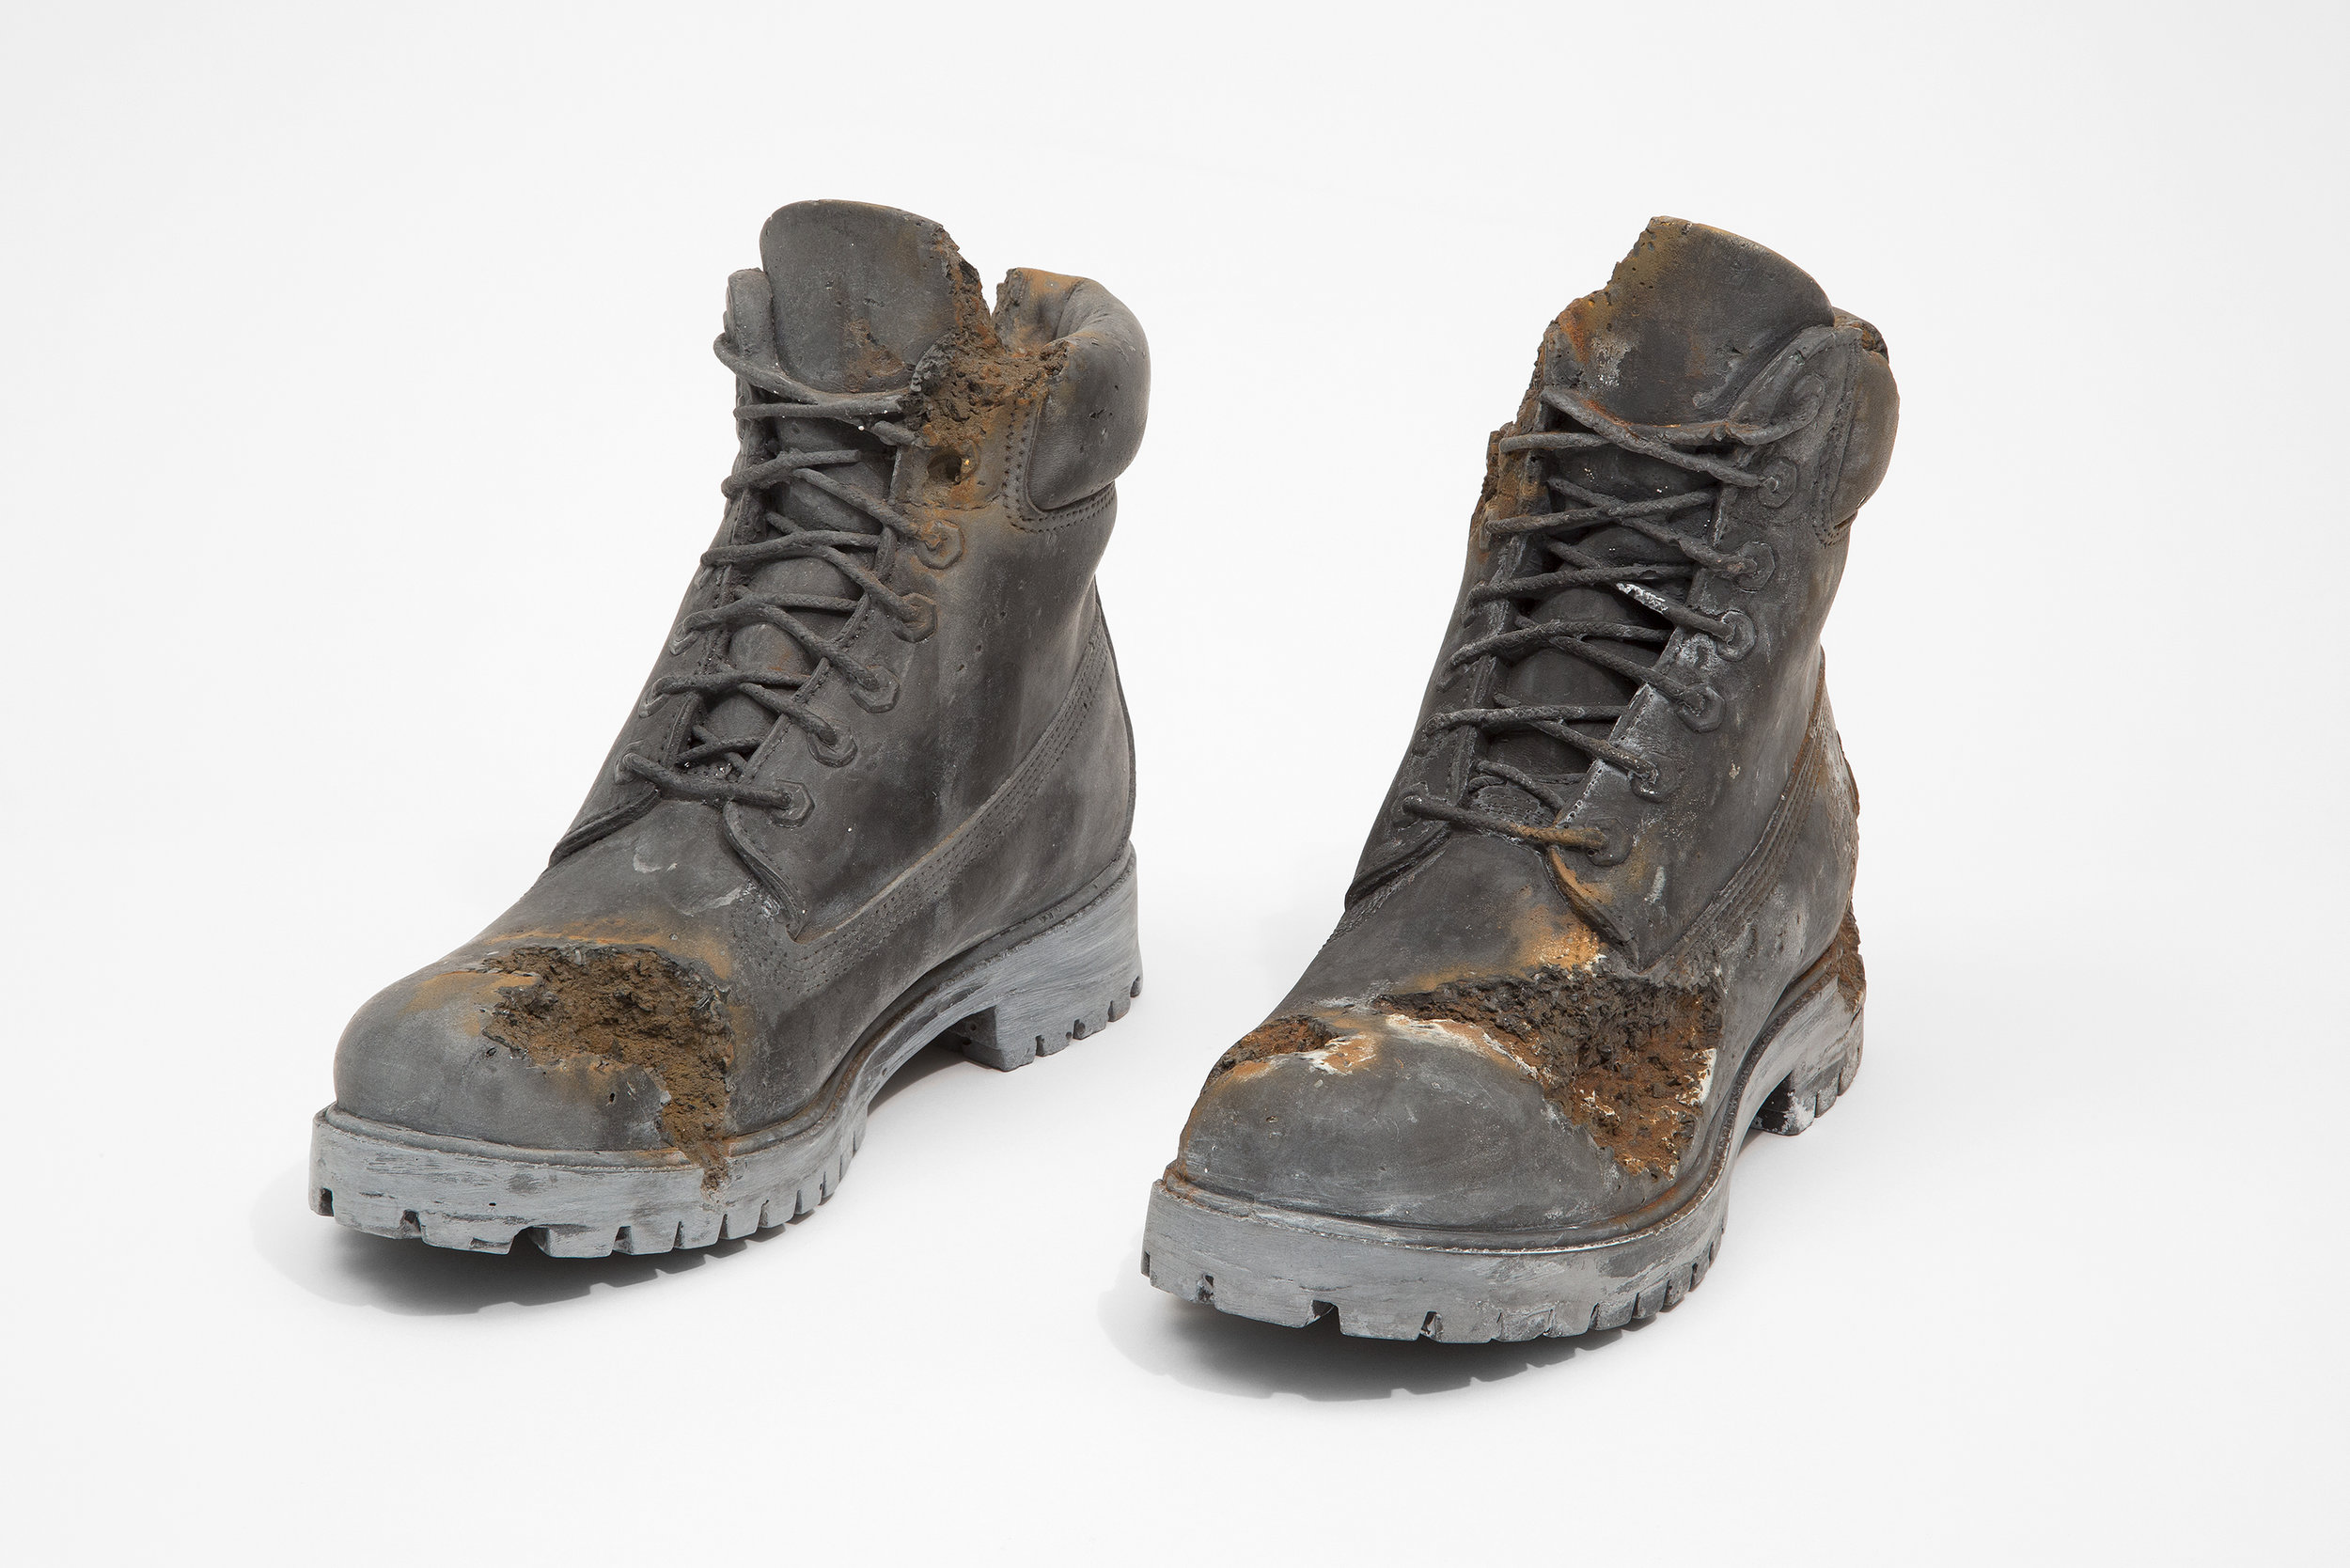 Daniel Arsham  -  Steel Eroded Boots (Pair) , 2019 Steel and hydrostone 8.75 x 12 x 4 inches each shoe